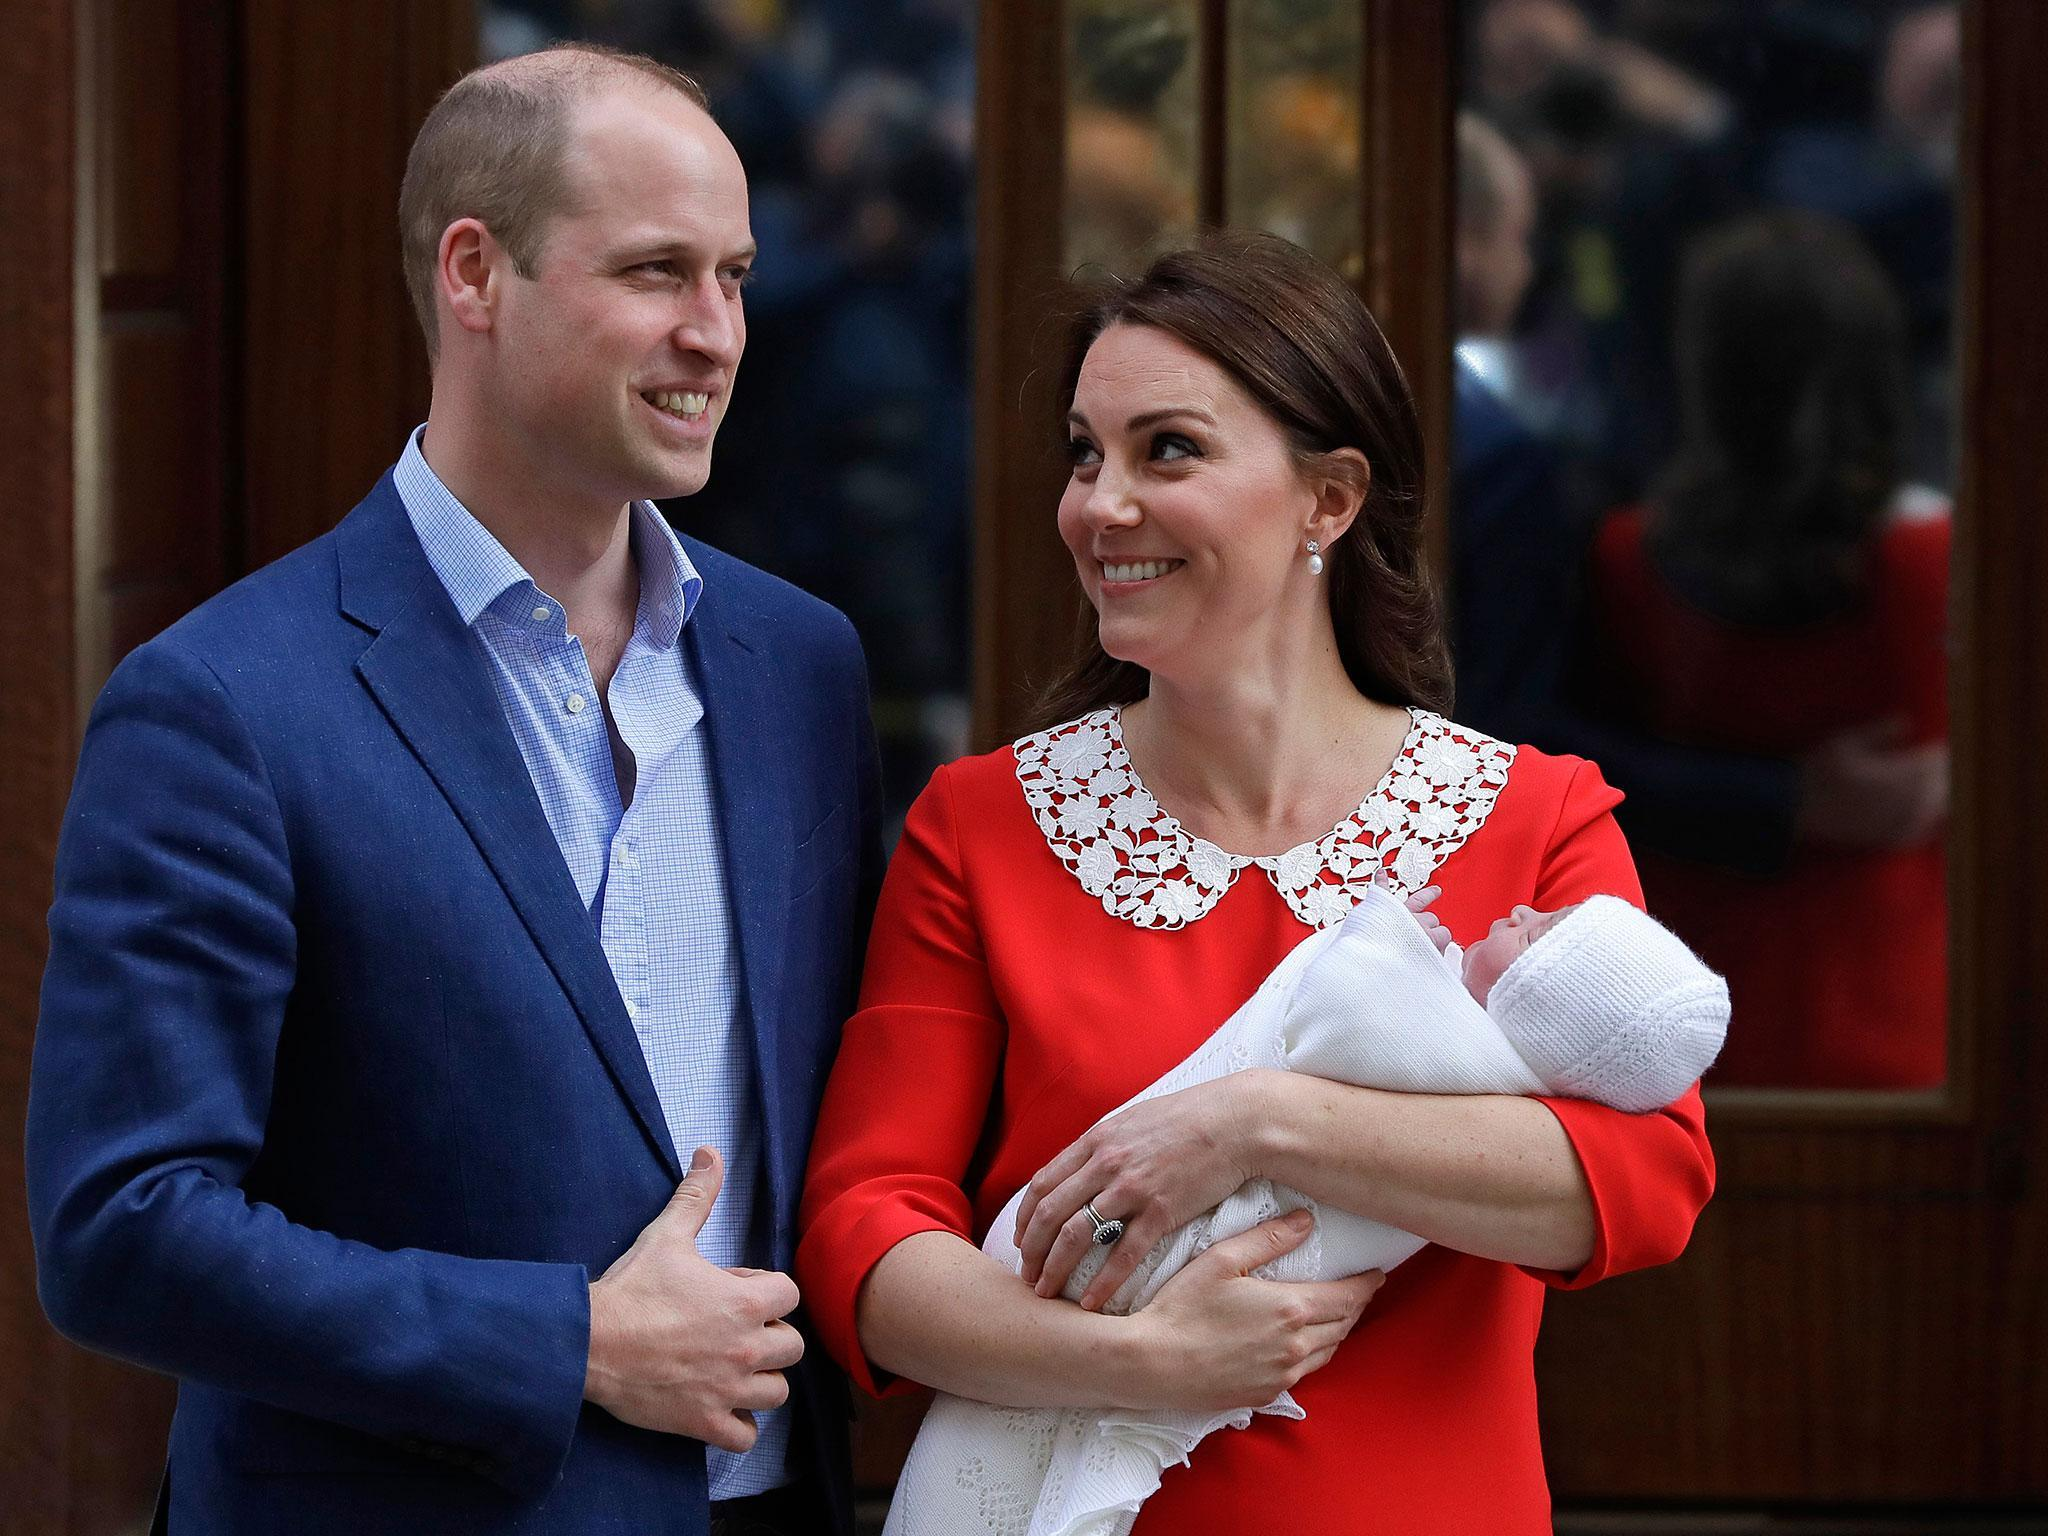 Communication on this topic: Prince George's Birth Made Official On Westminster , prince-georges-birth-made-official-on-westminster/